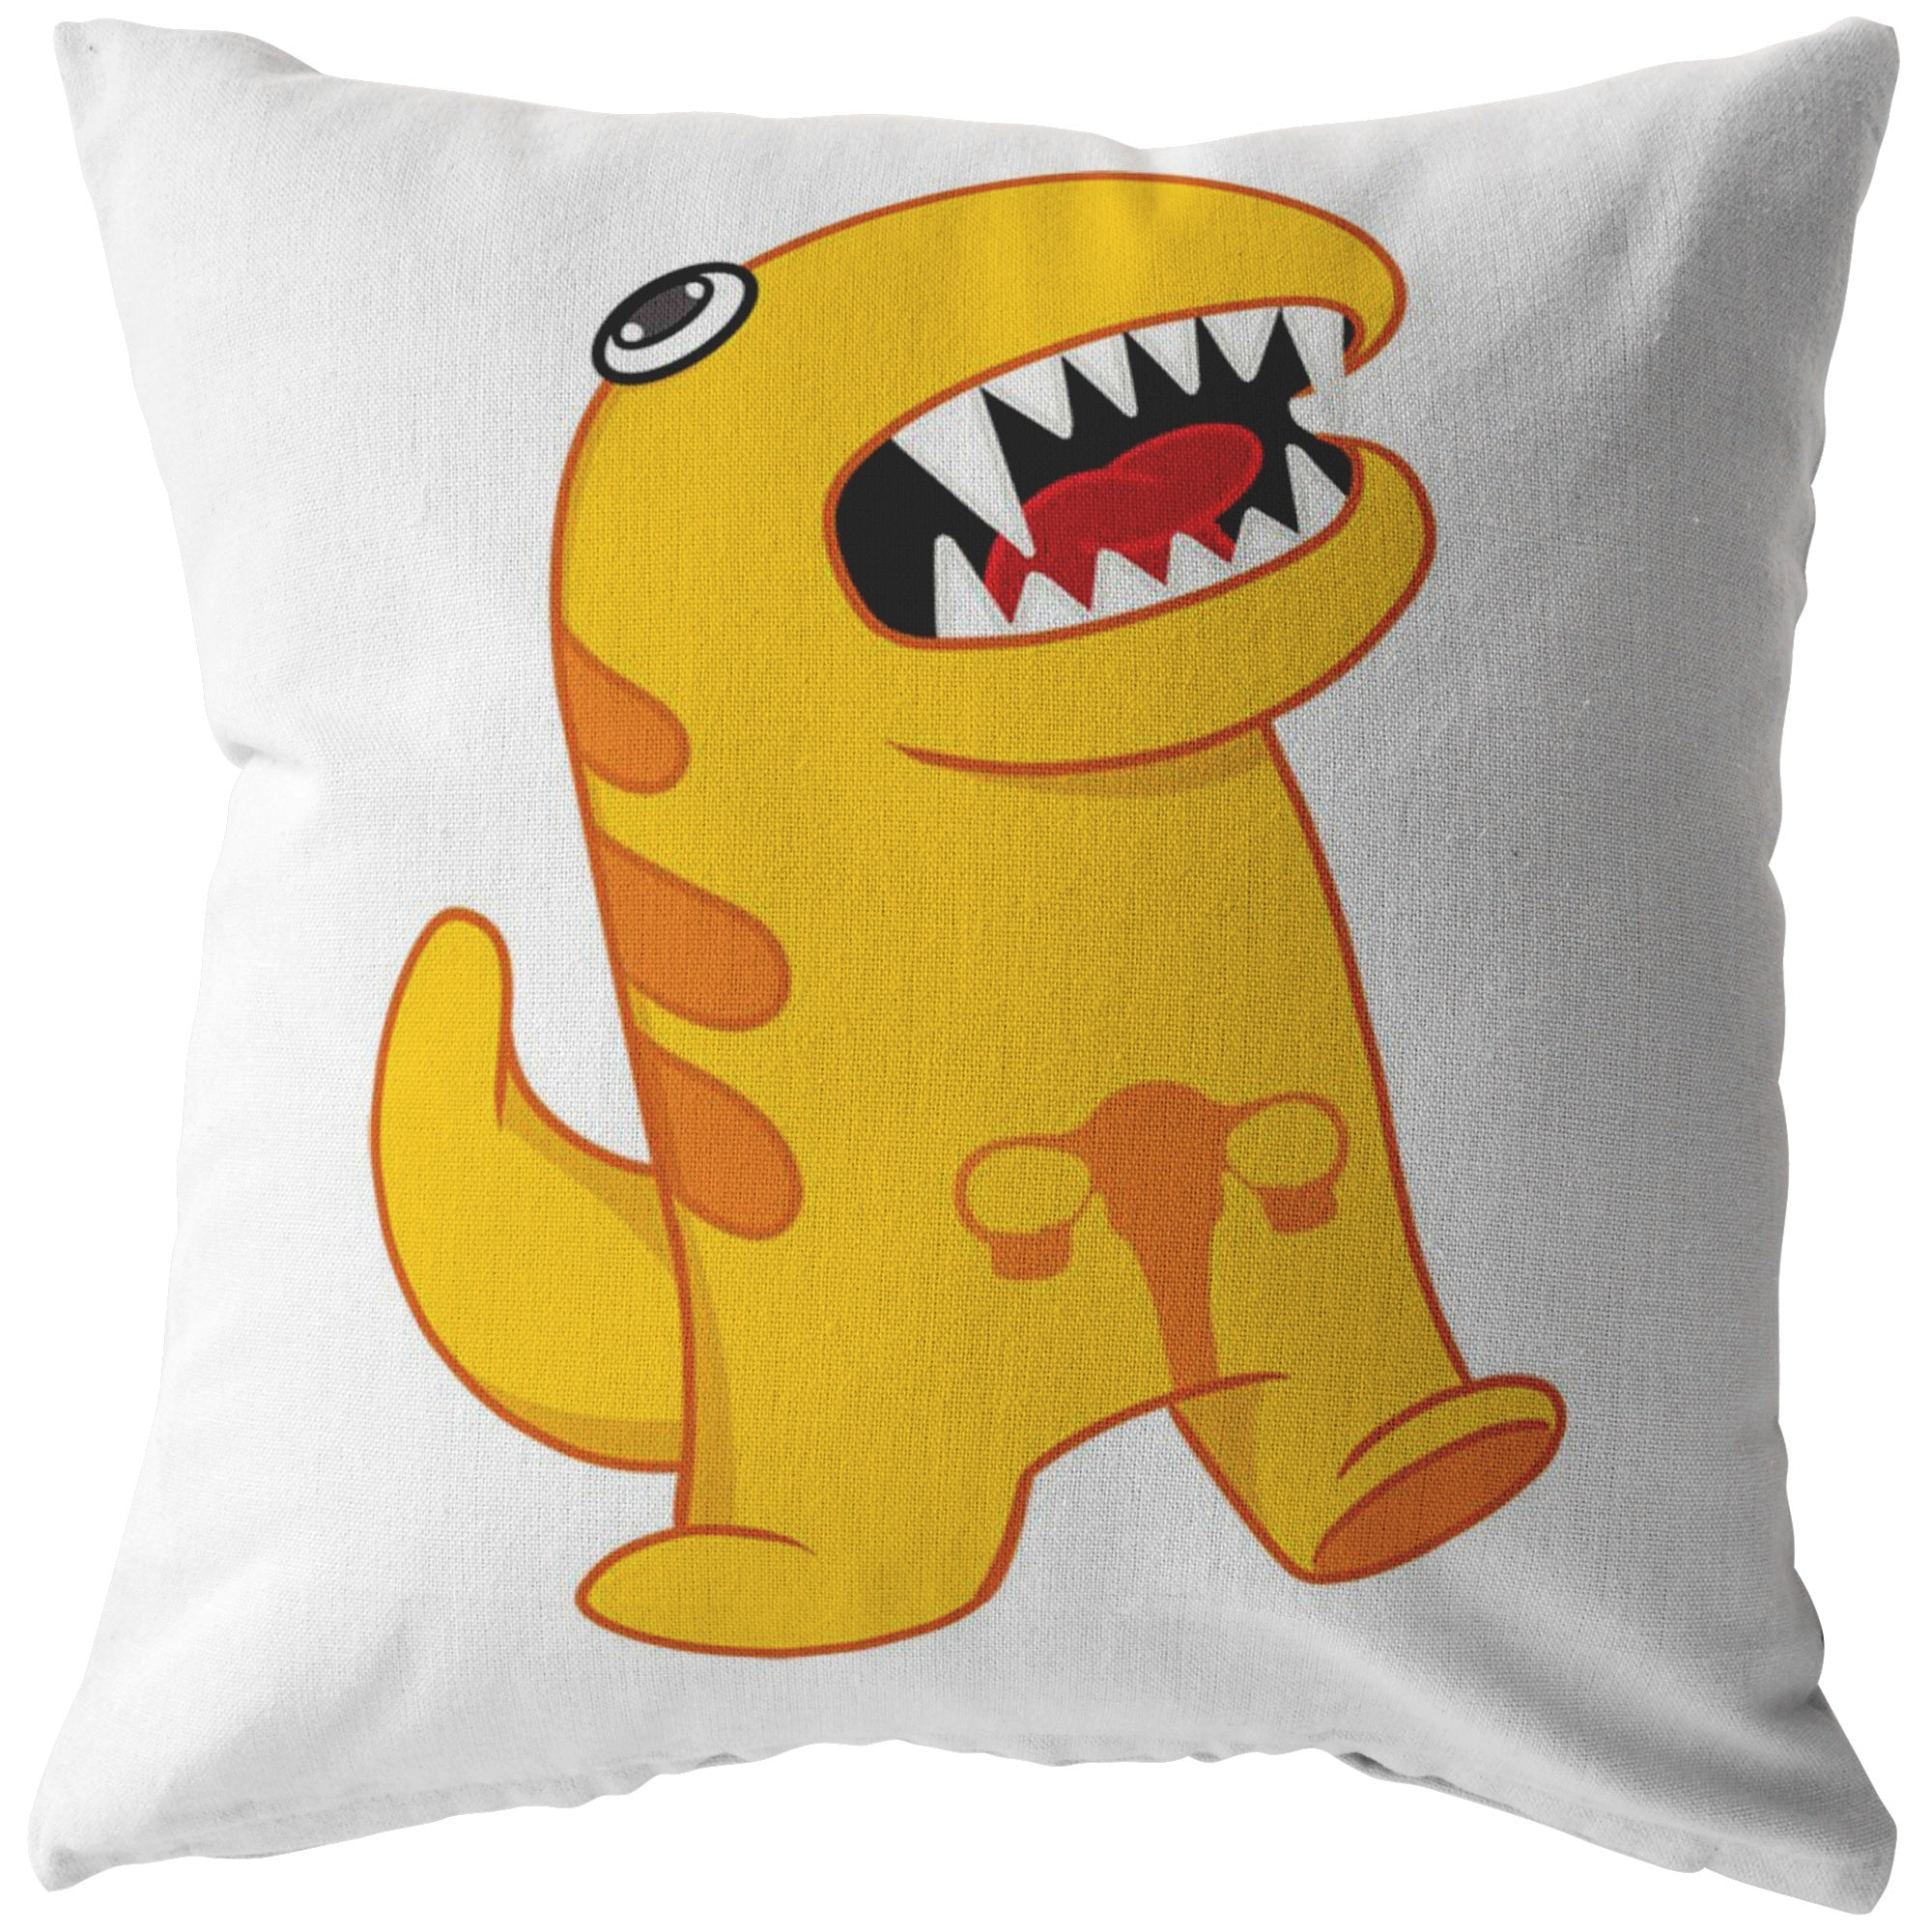 Endometriosis Monster Pillow - The Unchargeables